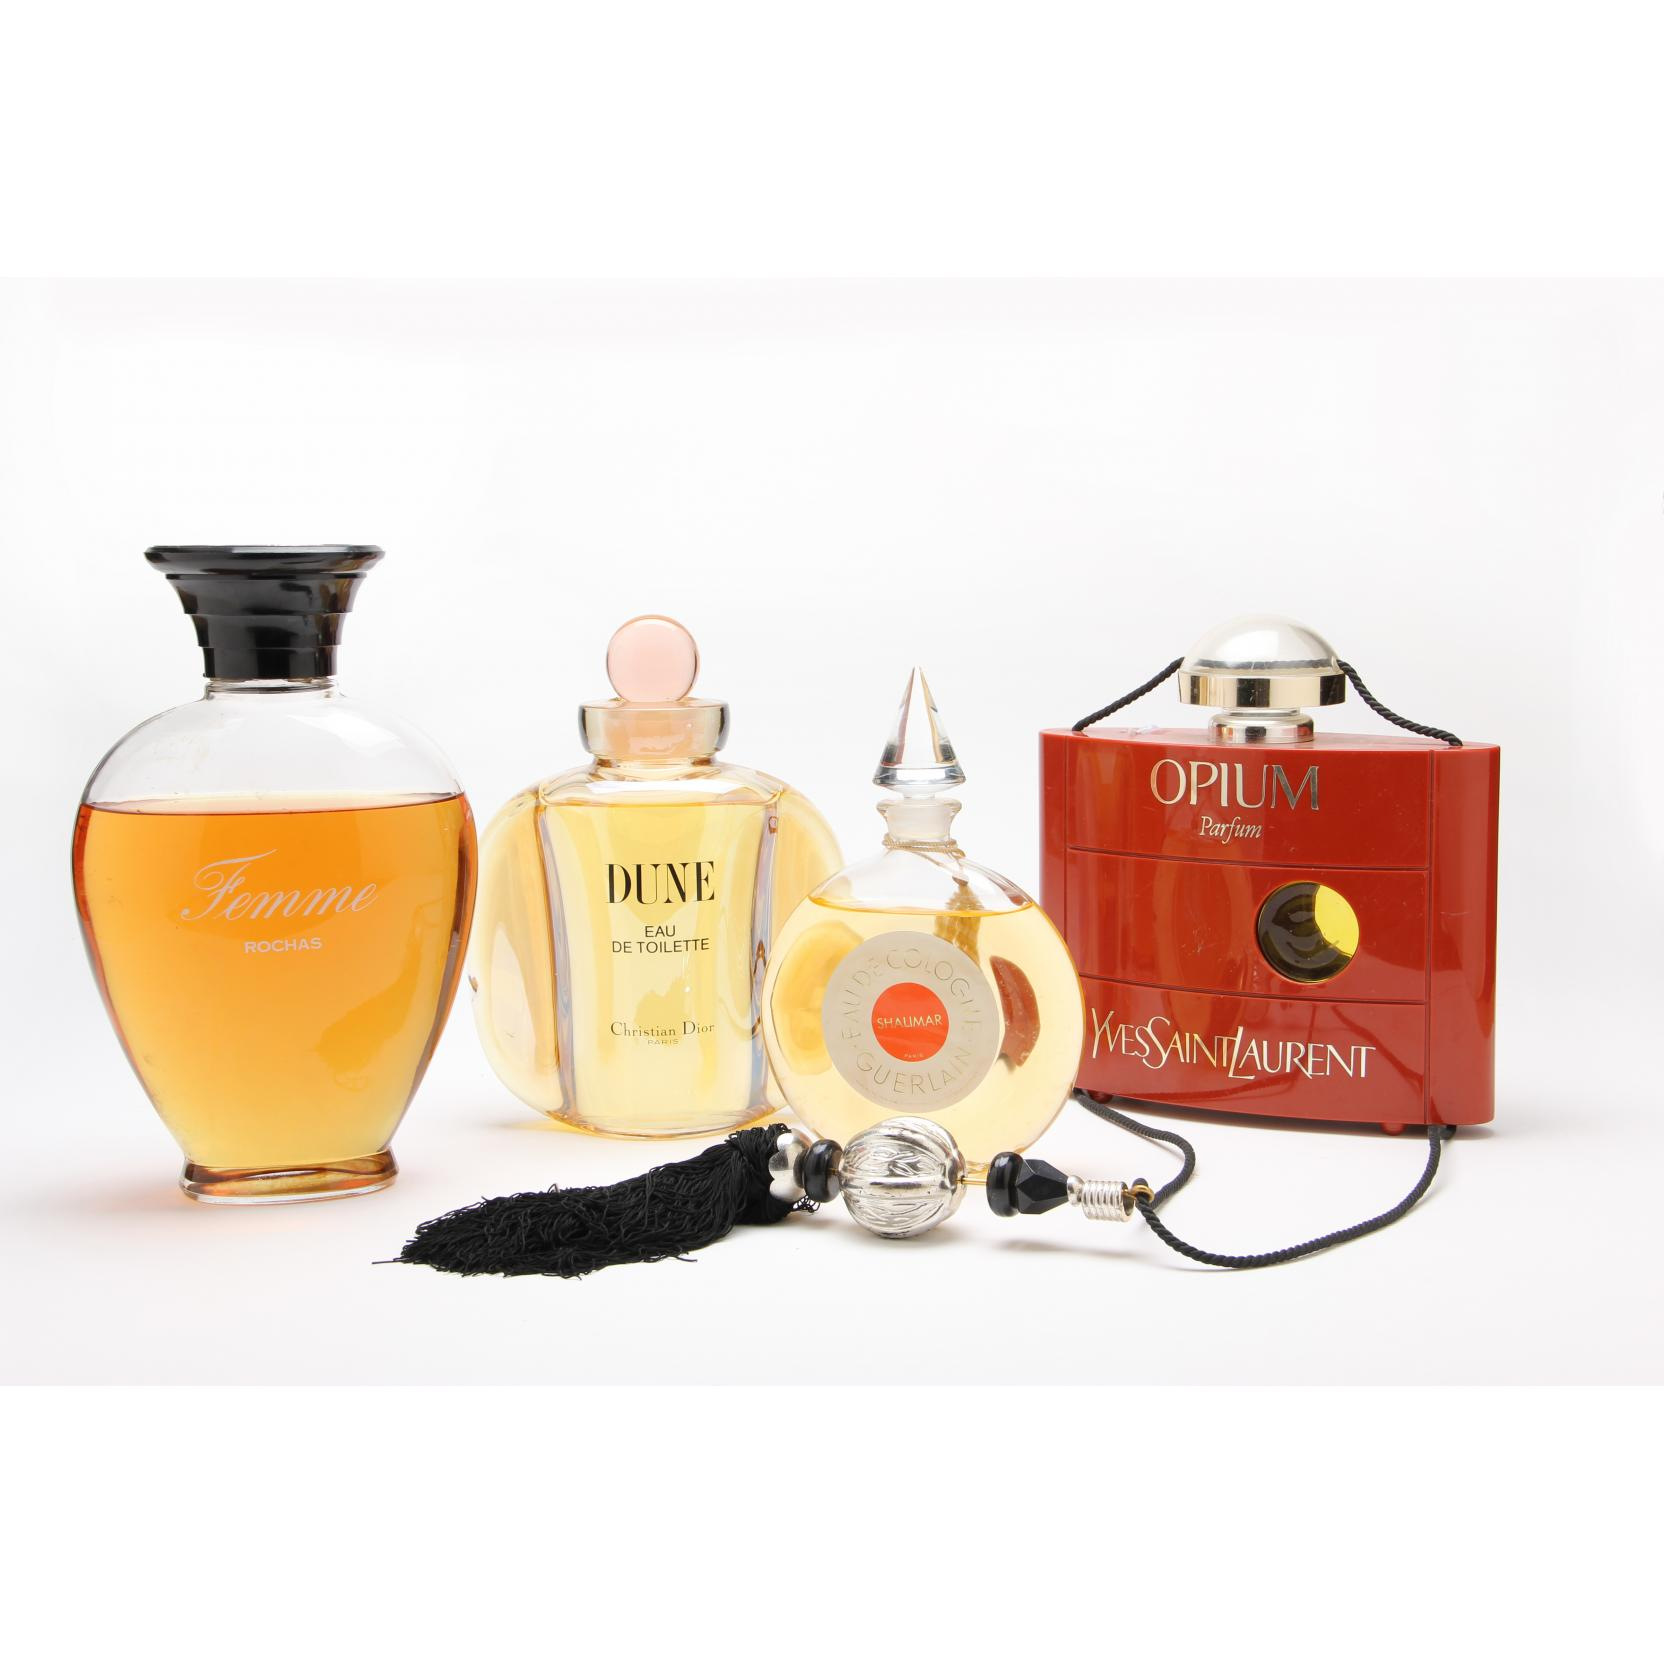 four-factice-perfume-display-bottles